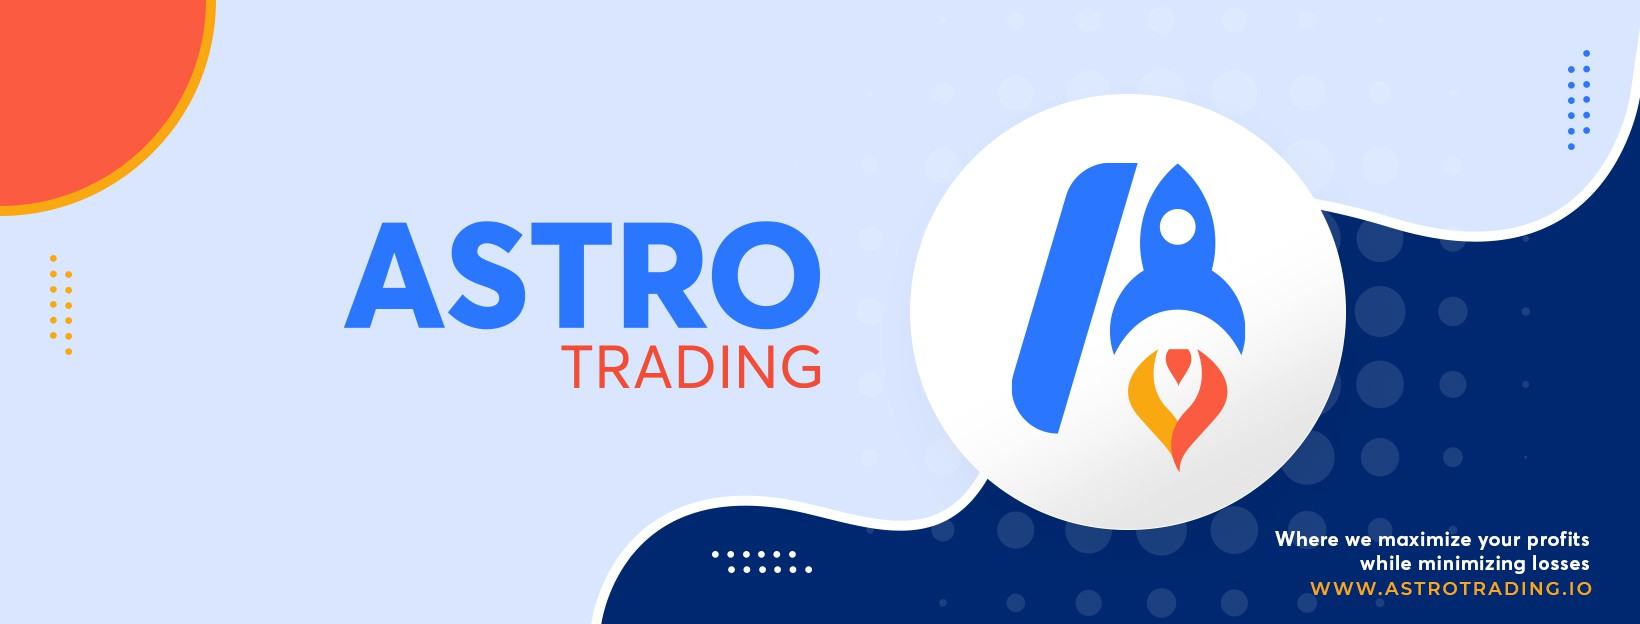 Astro Trading Small Banner